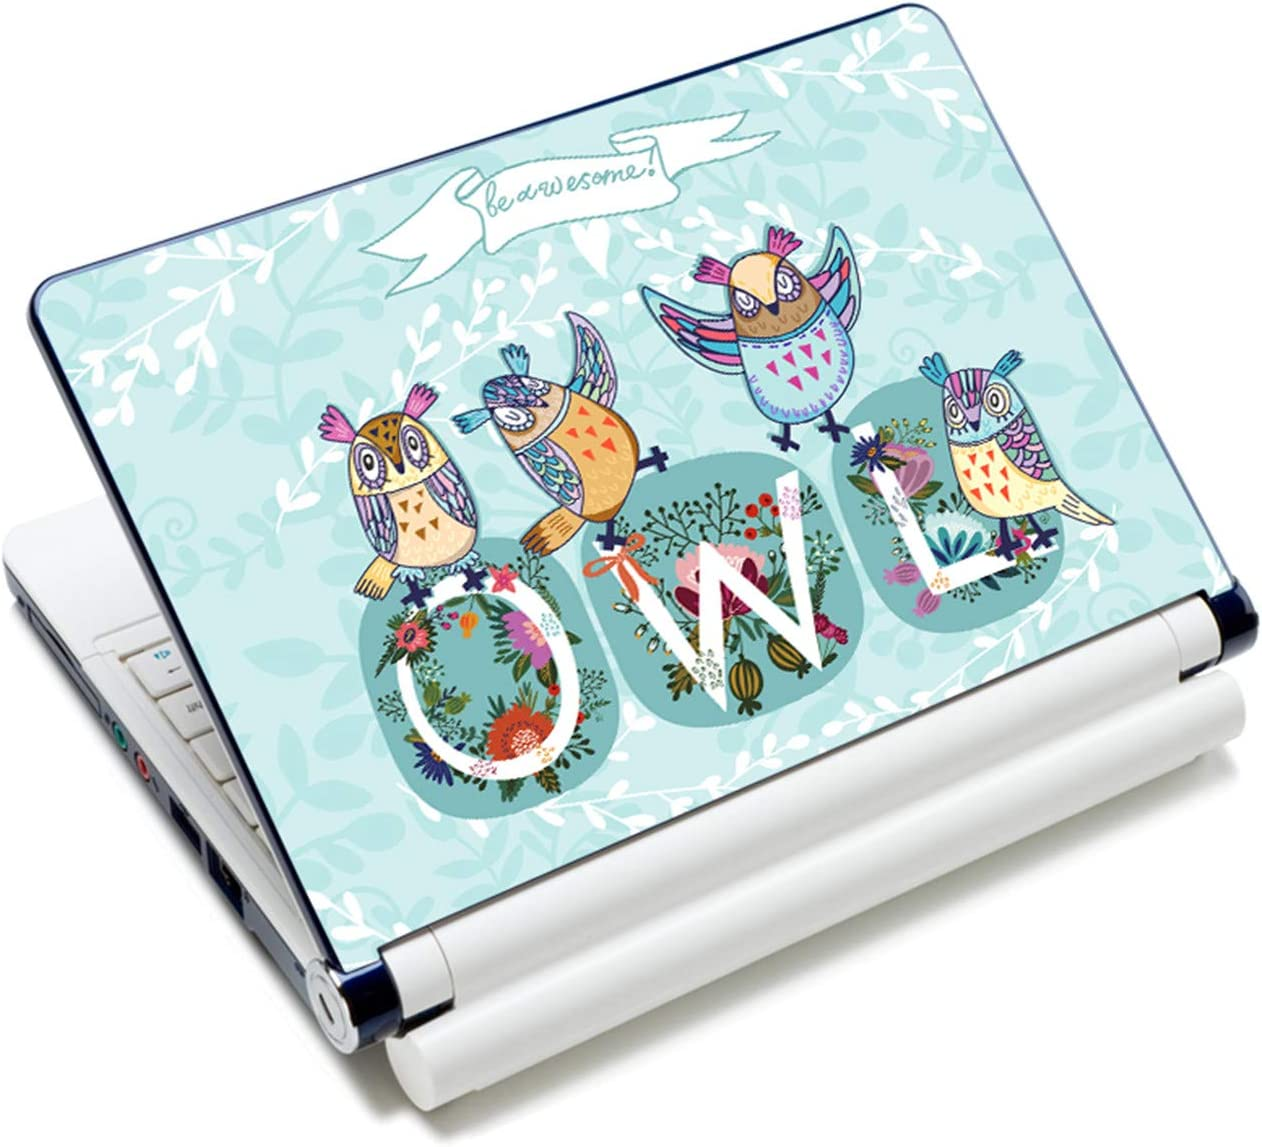 """Laptop Skin Sticker Decal,12"""" 13"""" 13.3"""" 14"""" 15"""" 15.4"""" 15.6"""" Laptop Skin Sticker Protector Cover for Toshiba Hp Samsung Dell Apple Acer Leonovo Sony Asus Laptop Notebook (Cute Owls)"""